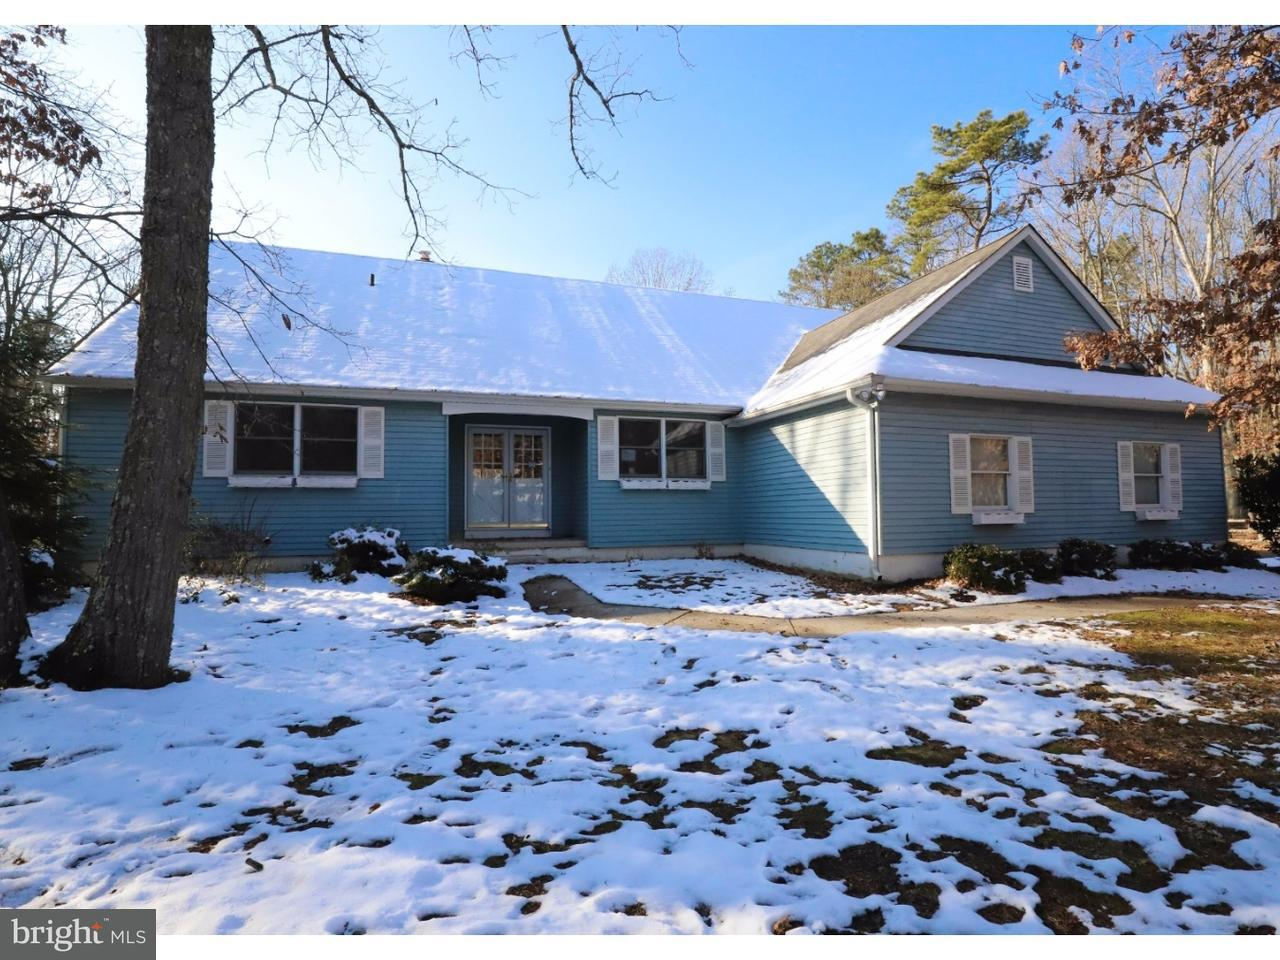 Single Family Home for Sale at 443 PRICKETTS MILL Road Tabernacle, New Jersey 08088 United States